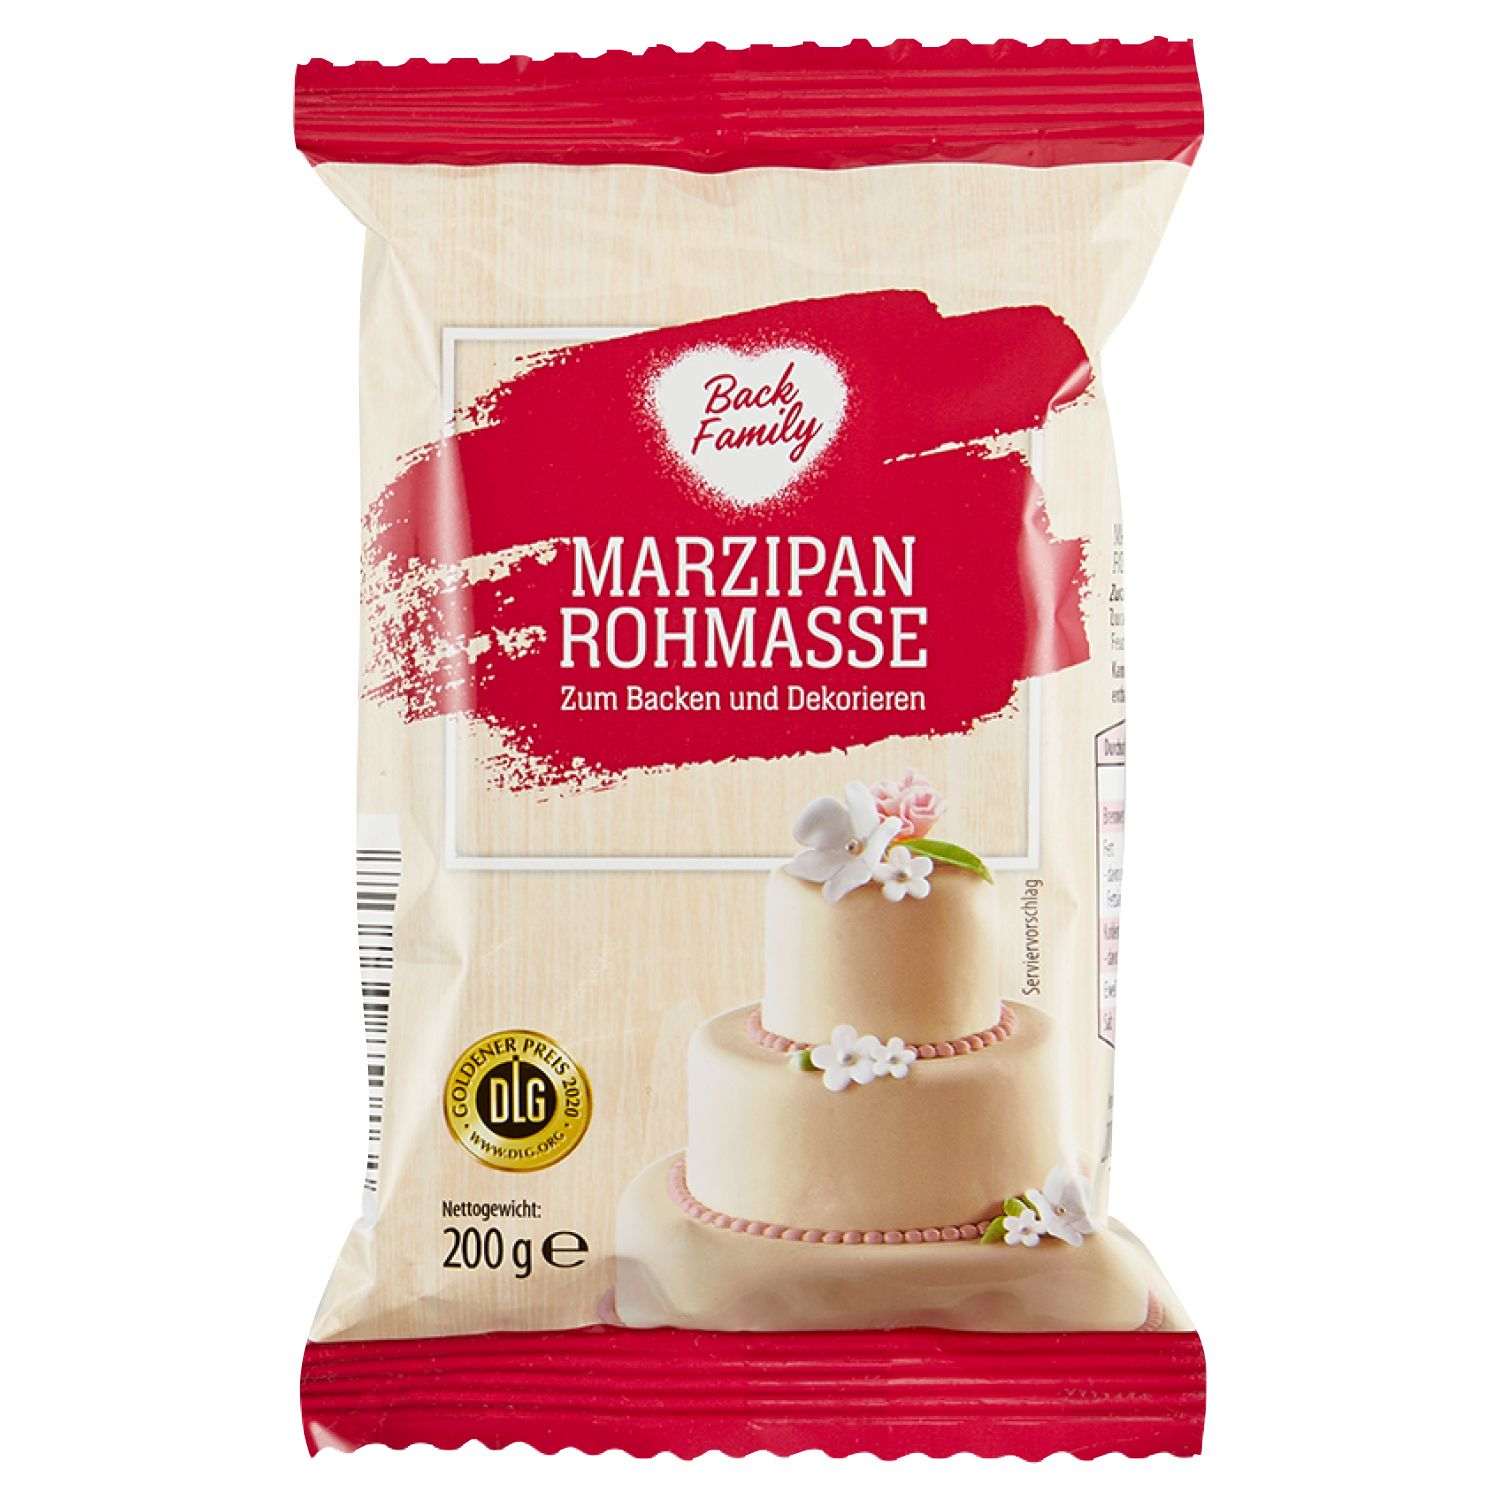 Back Family Marzipan Rohmasse 200 g